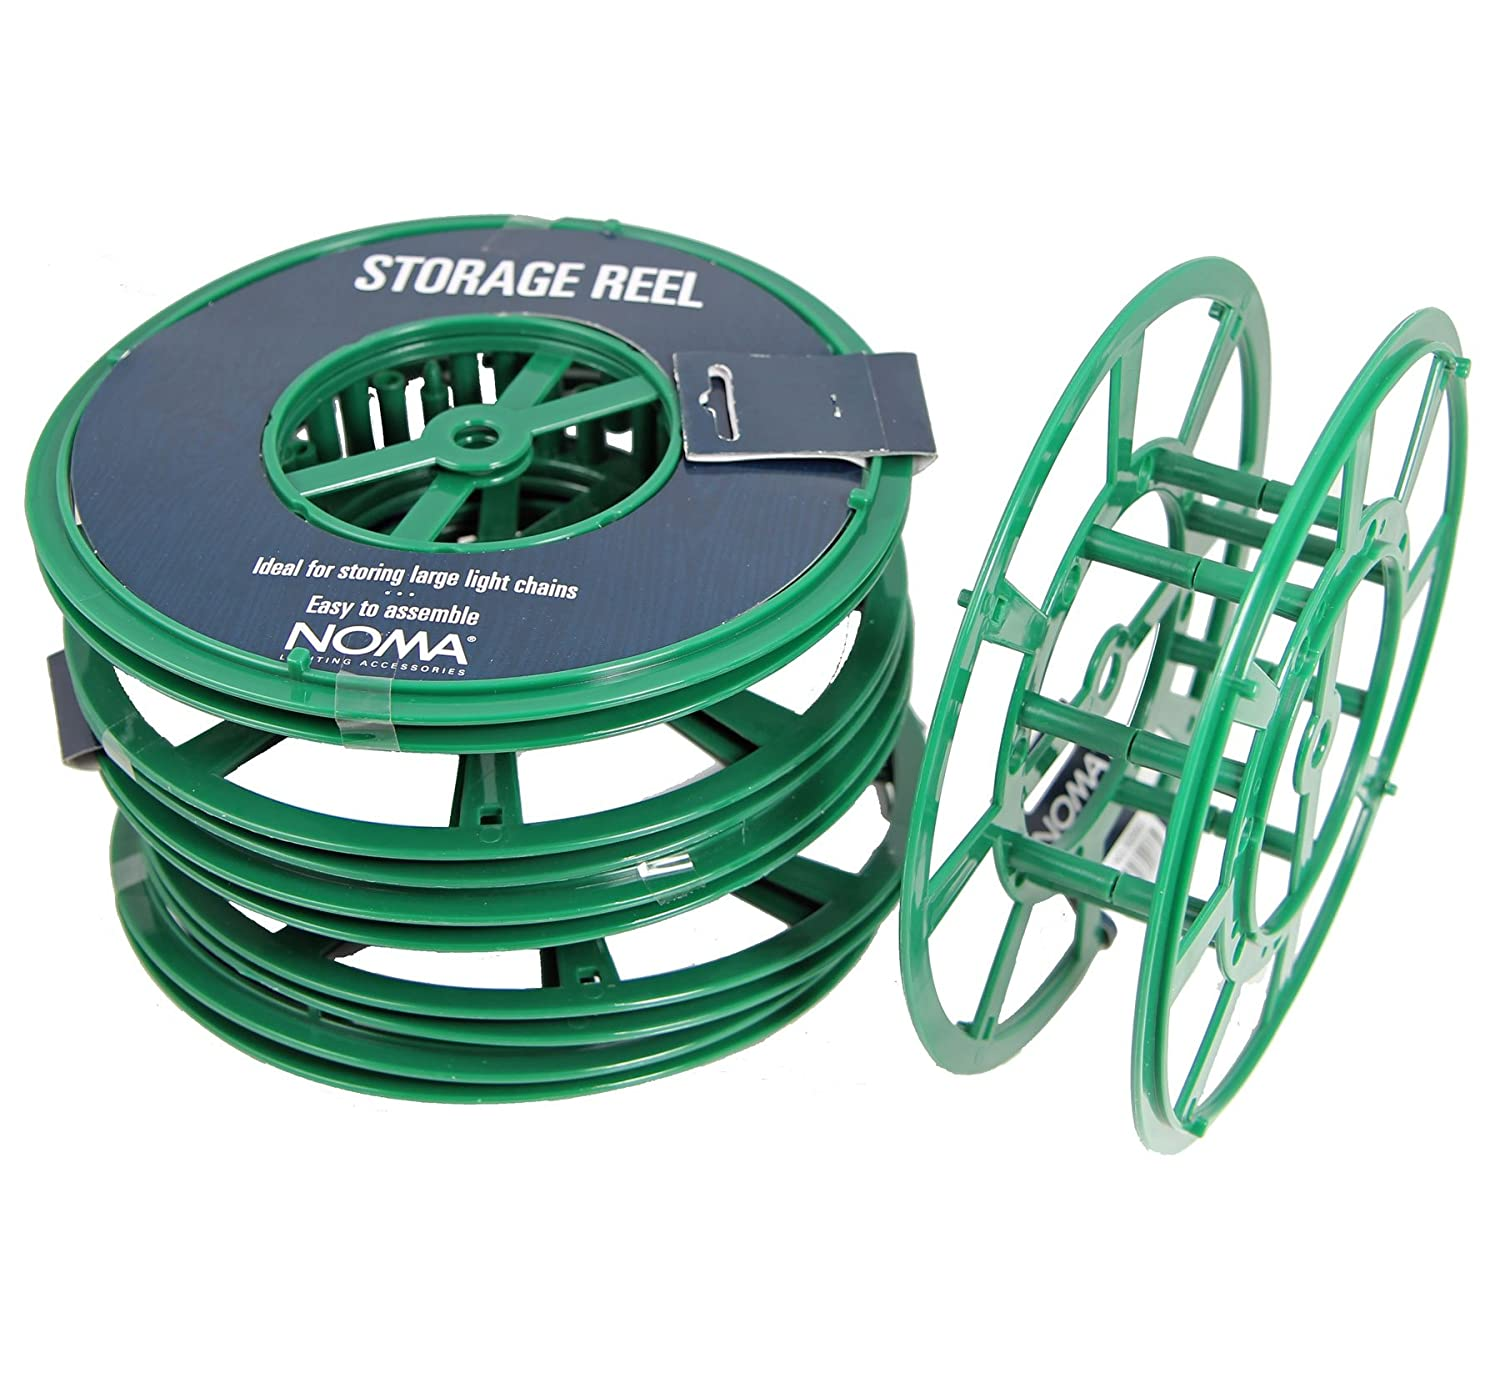 6x STORAGE REELS - Christmas lights, Rope lights, Extension cable ...